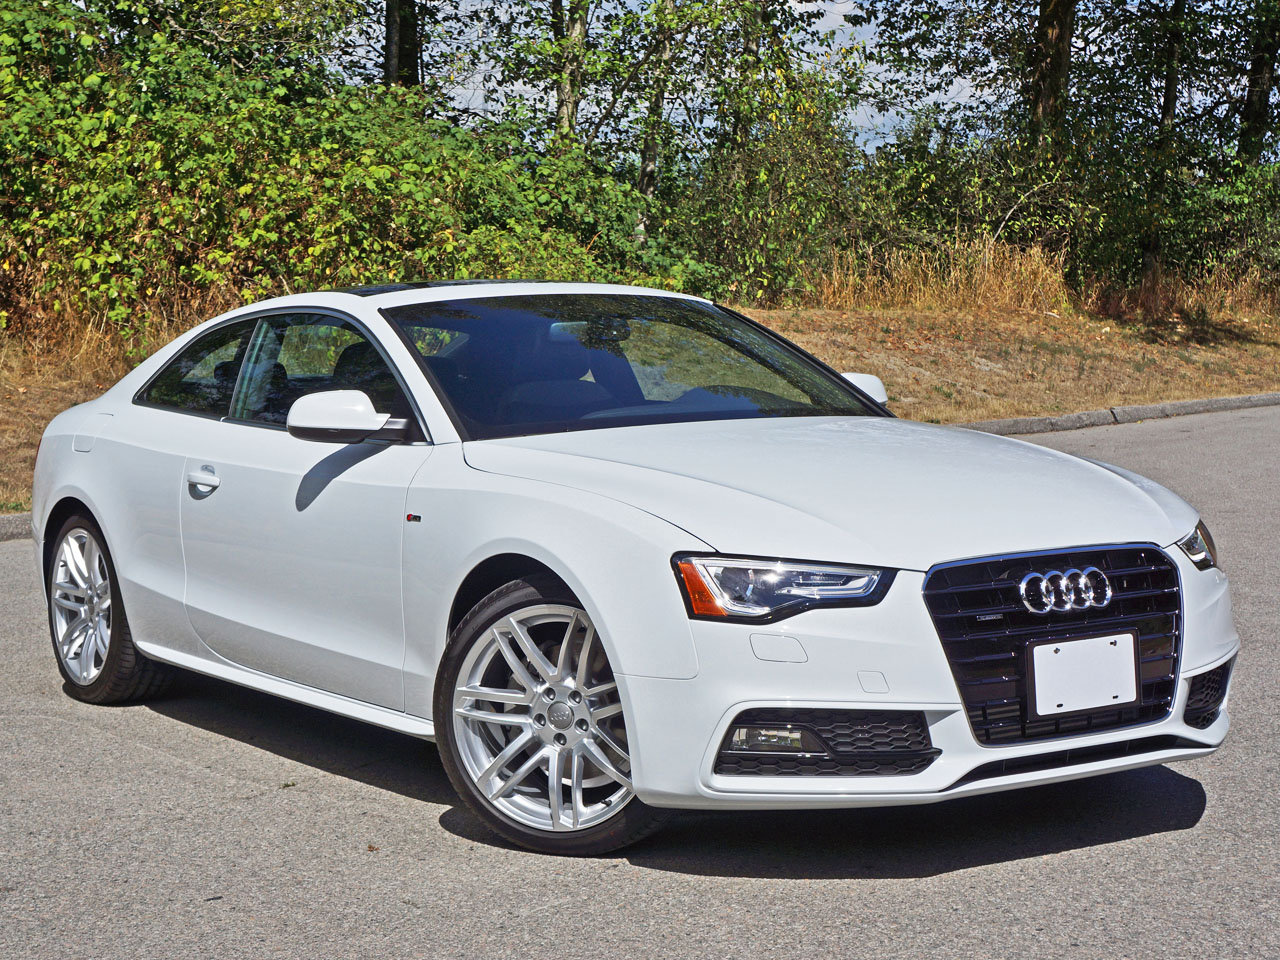 2015 audi a5 coupe 2 0 tfsi quattro progressiv s line road test review carcostcanada. Black Bedroom Furniture Sets. Home Design Ideas